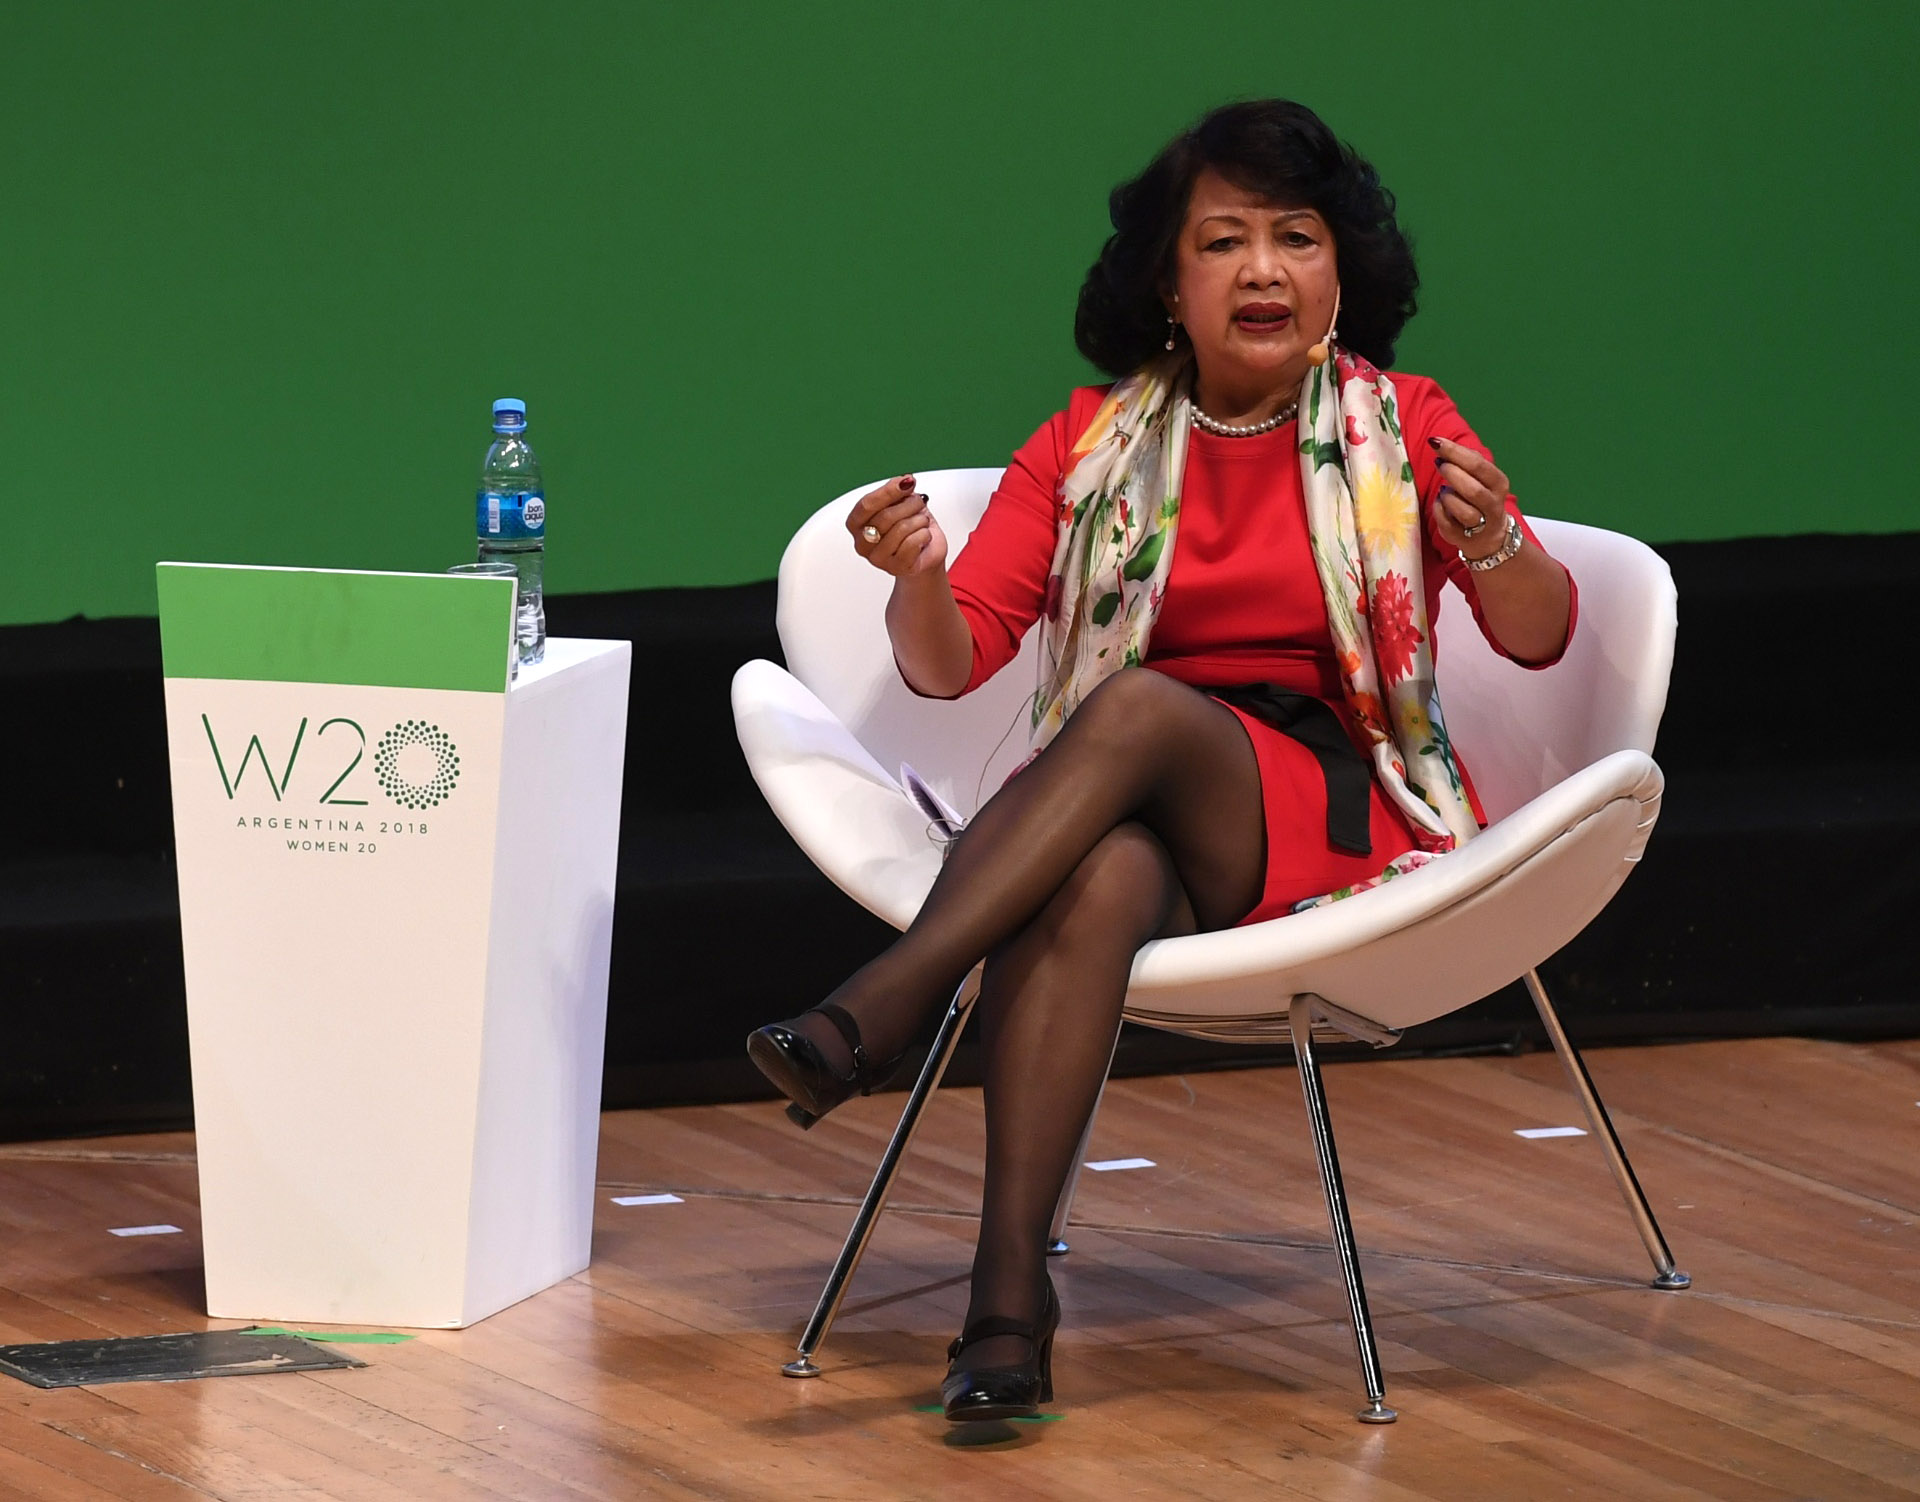 Irene Natividad, presidente de Globe Women Research Education Institute